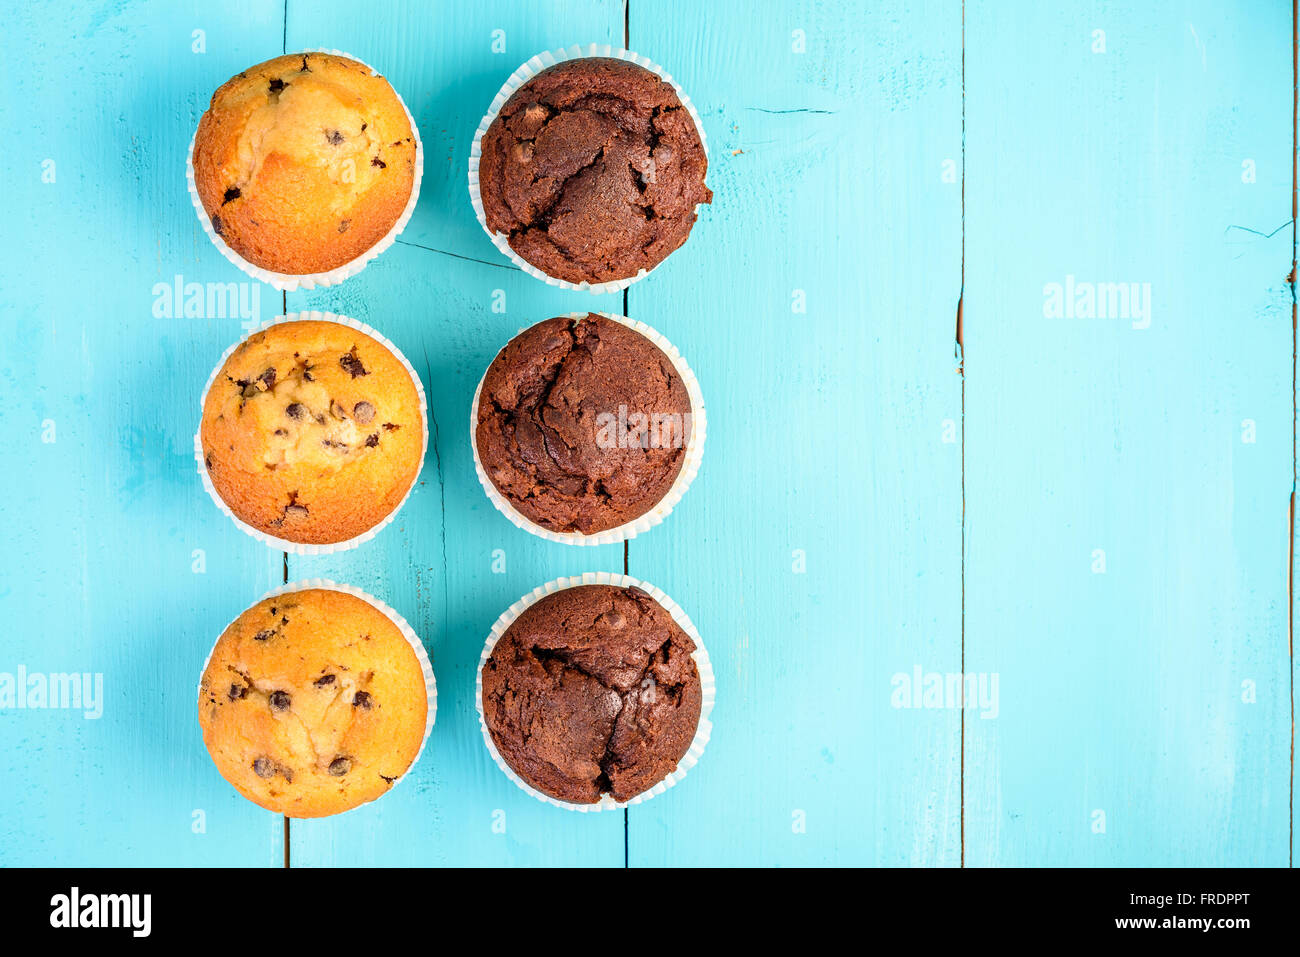 Homemade Chocolate Chip Muffins On Blue Table - Stock Image